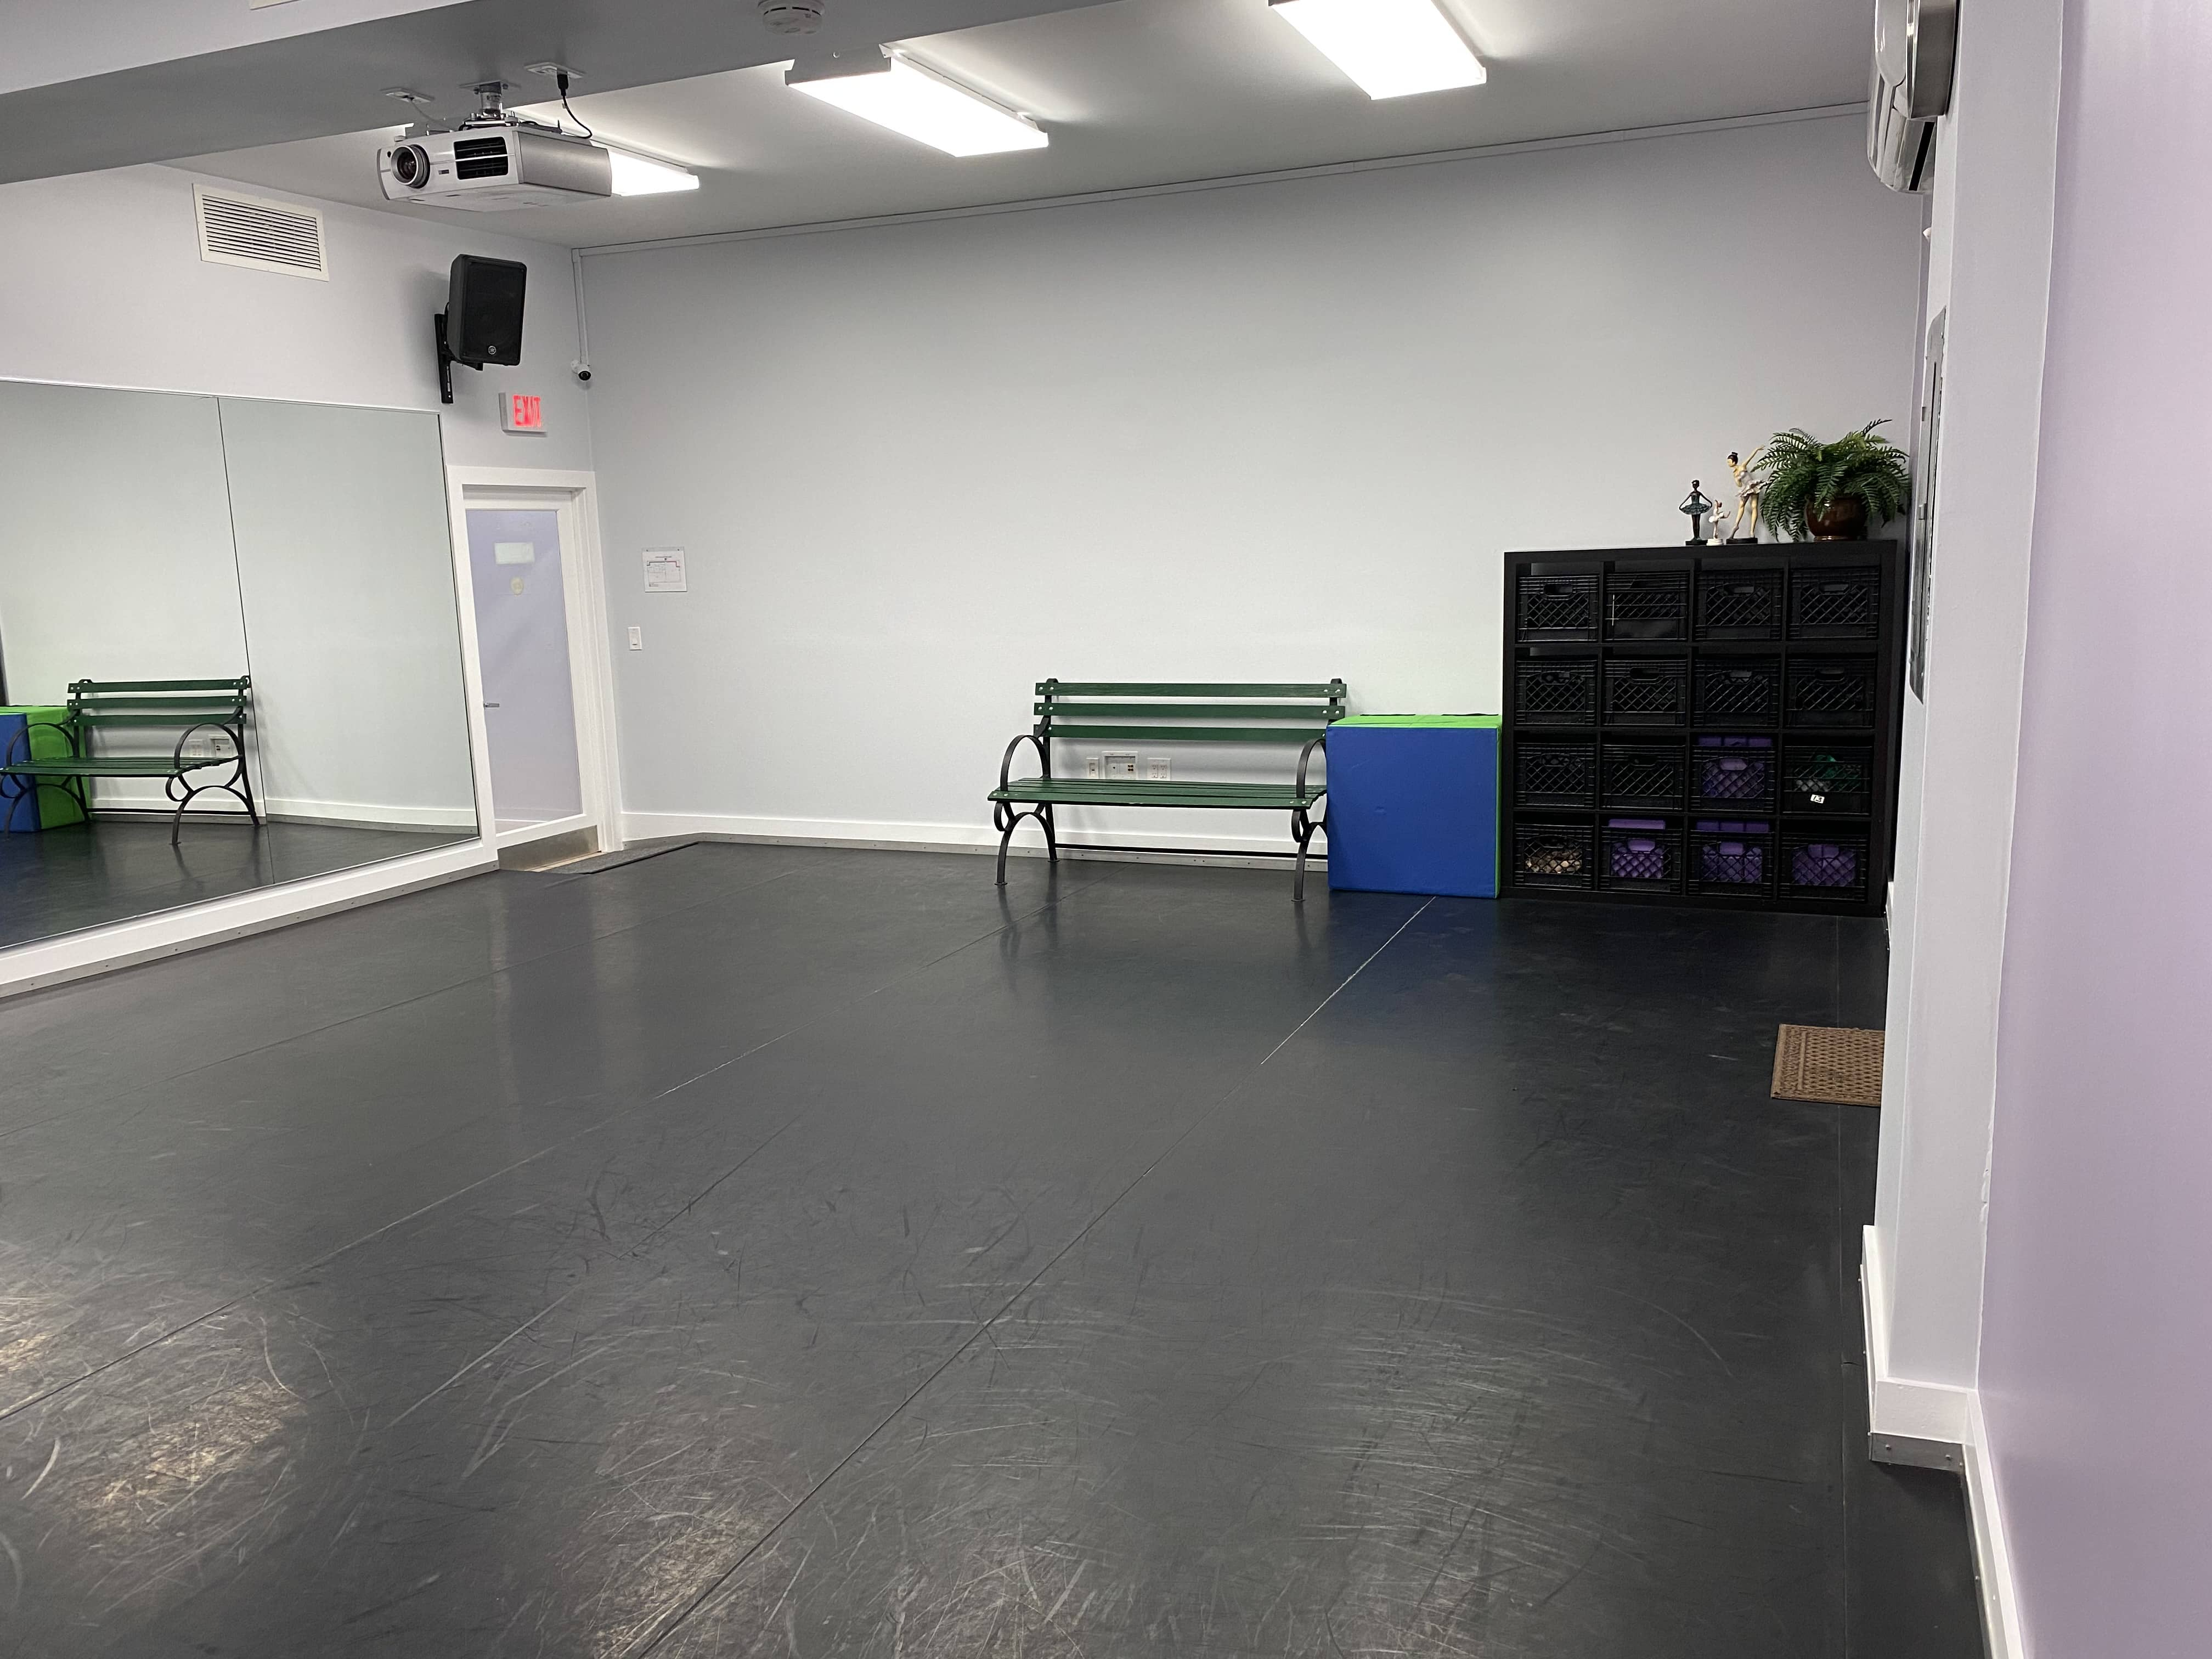 Another angle showing the inside of Creativo Dance Studio with padded dance floor and mirror on the wall